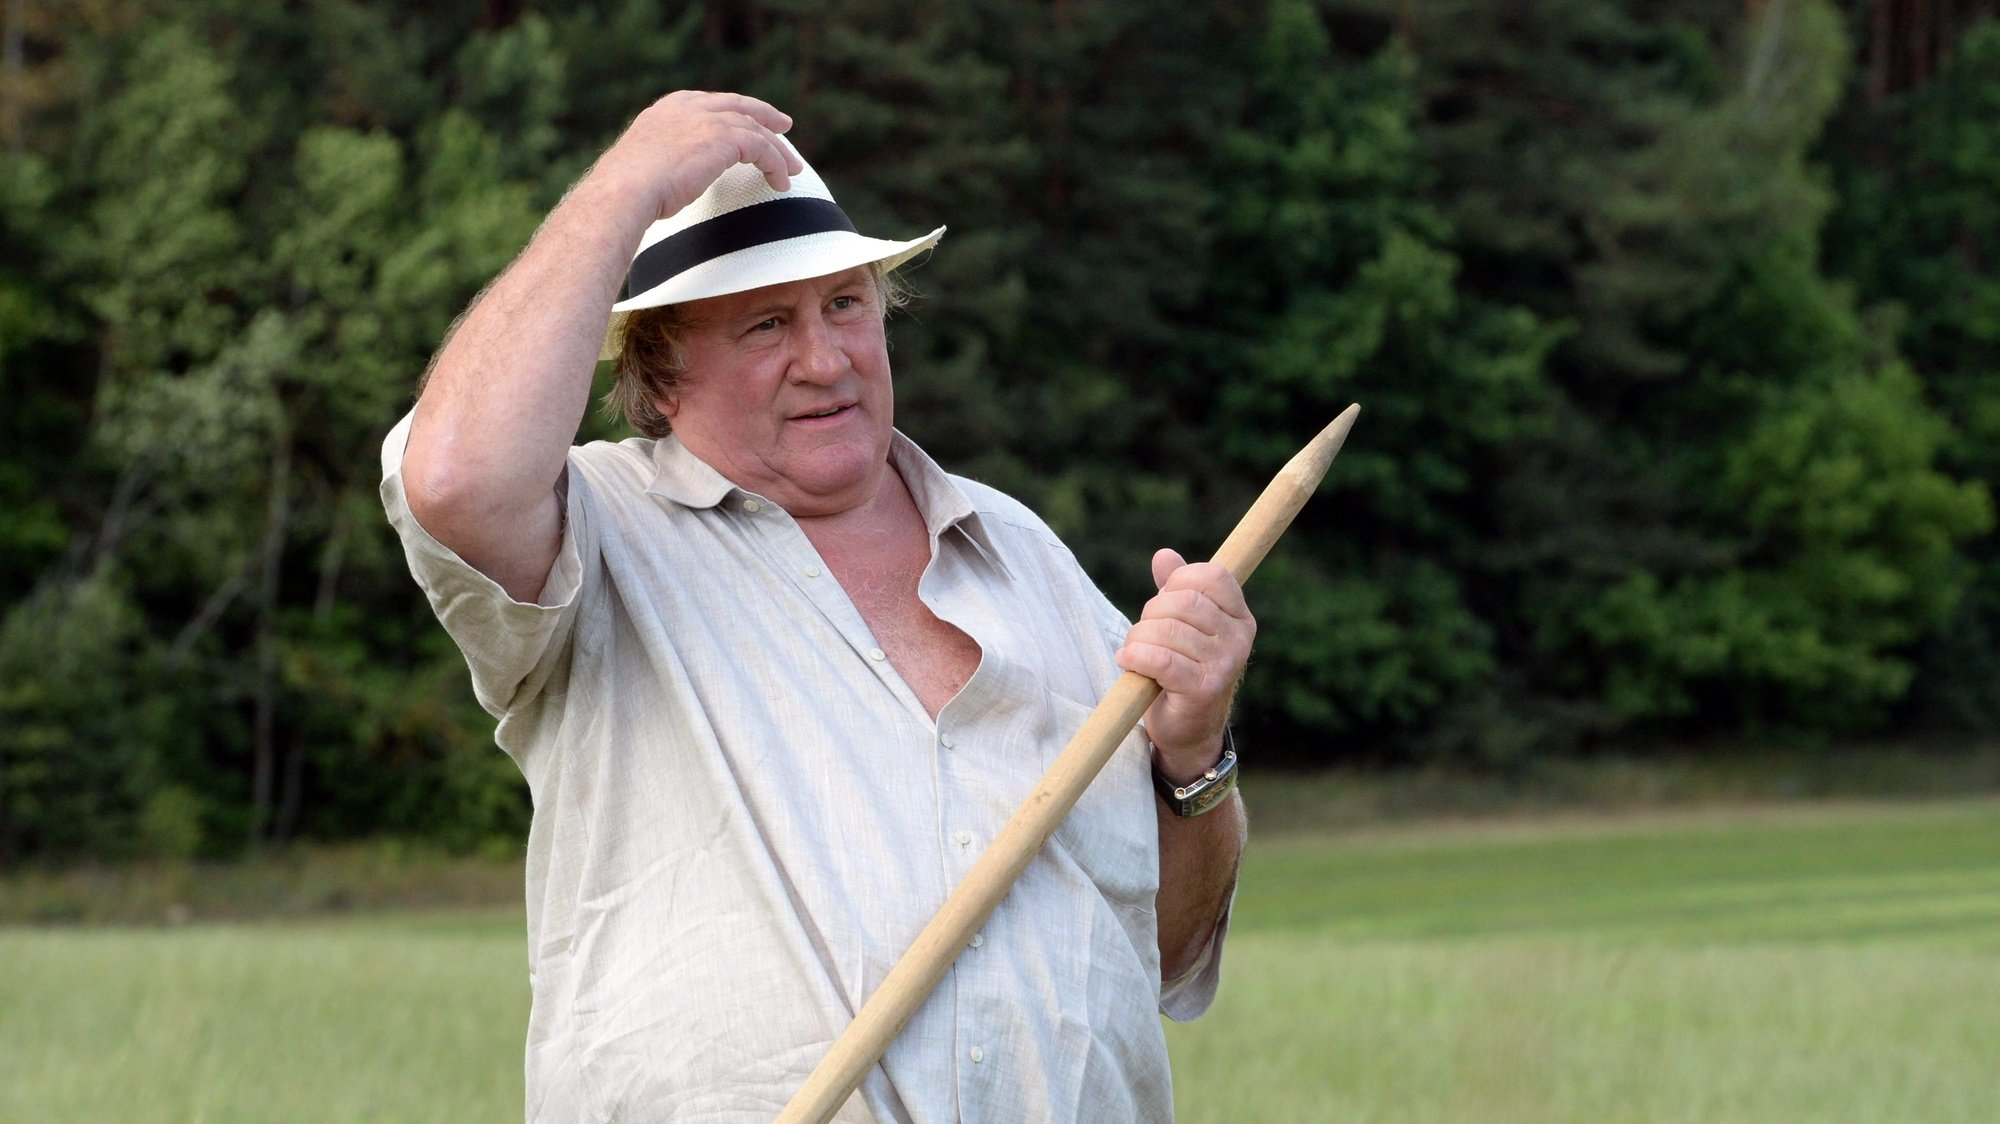 epa09032153 (FILE) - French actor Gerard Depardieu participates in hand-scything on the territory of the Ozerny official presidential residence outside Minsk, Belarus, 22 July 2015  (reissued 23 February 2021). French media citing judicial sources report on 23 February 2021 that Depardieu has been charged with rape. The French actor had already been accused of rape and sexual assault in 2018.  EPA/ANDREI STASEVICH POOL *** Local Caption *** 54851032